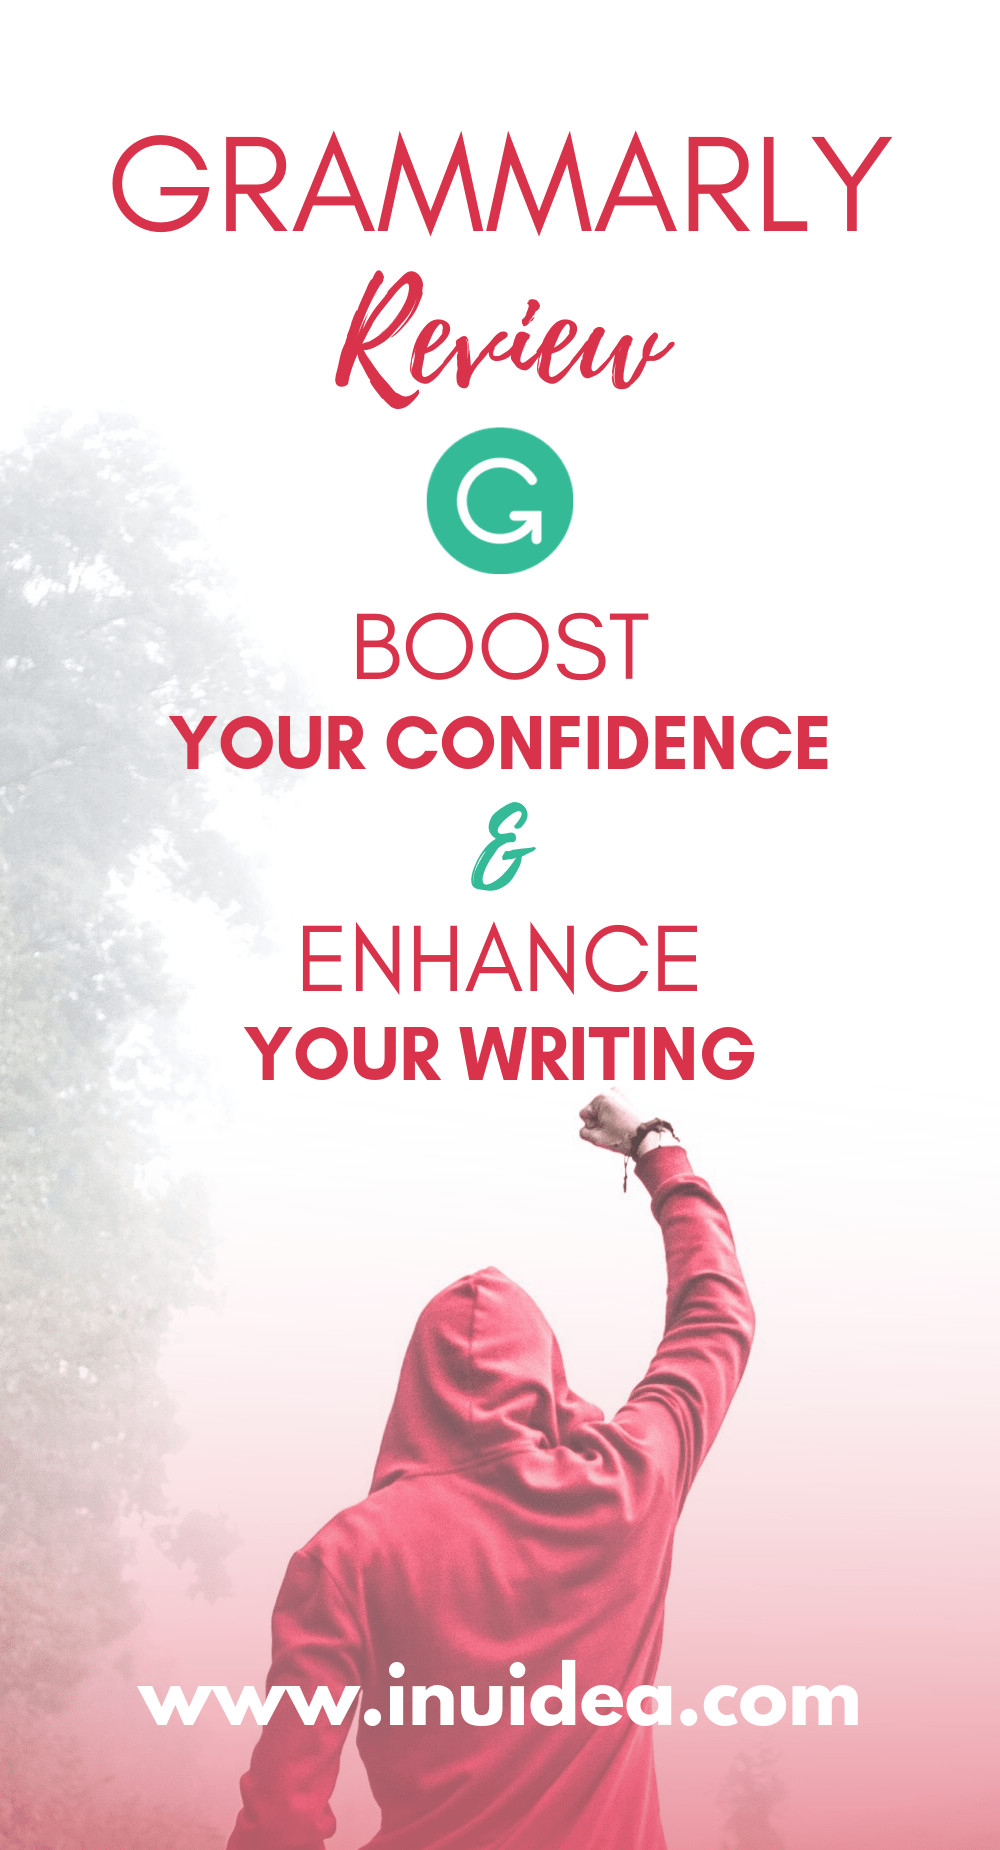 Buy Grammarly Cheap Pay As You Go